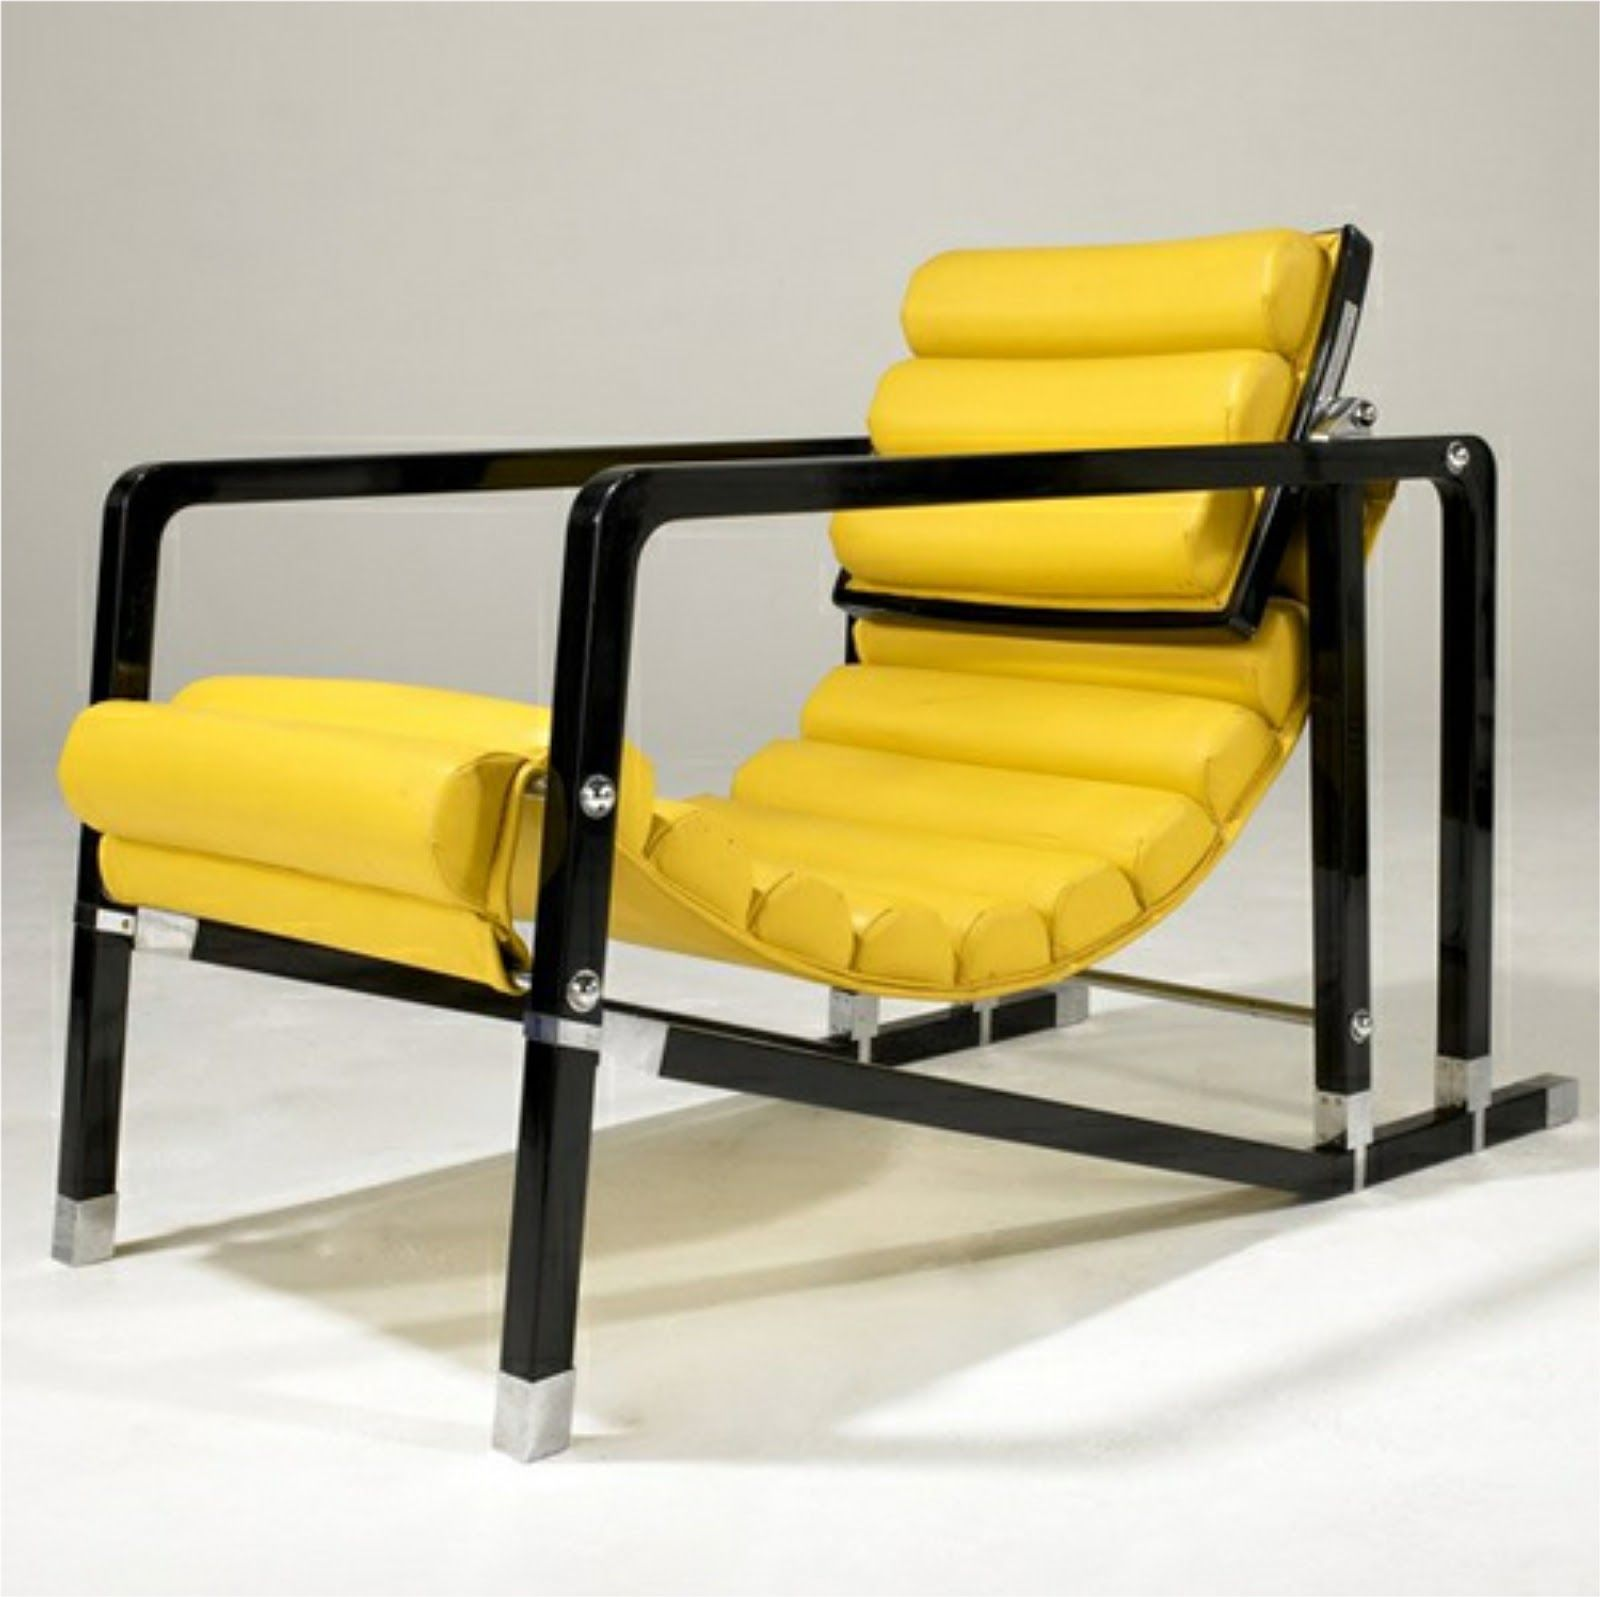 Original Eileen Gray Transat Chairs Are Chairs Produced By The